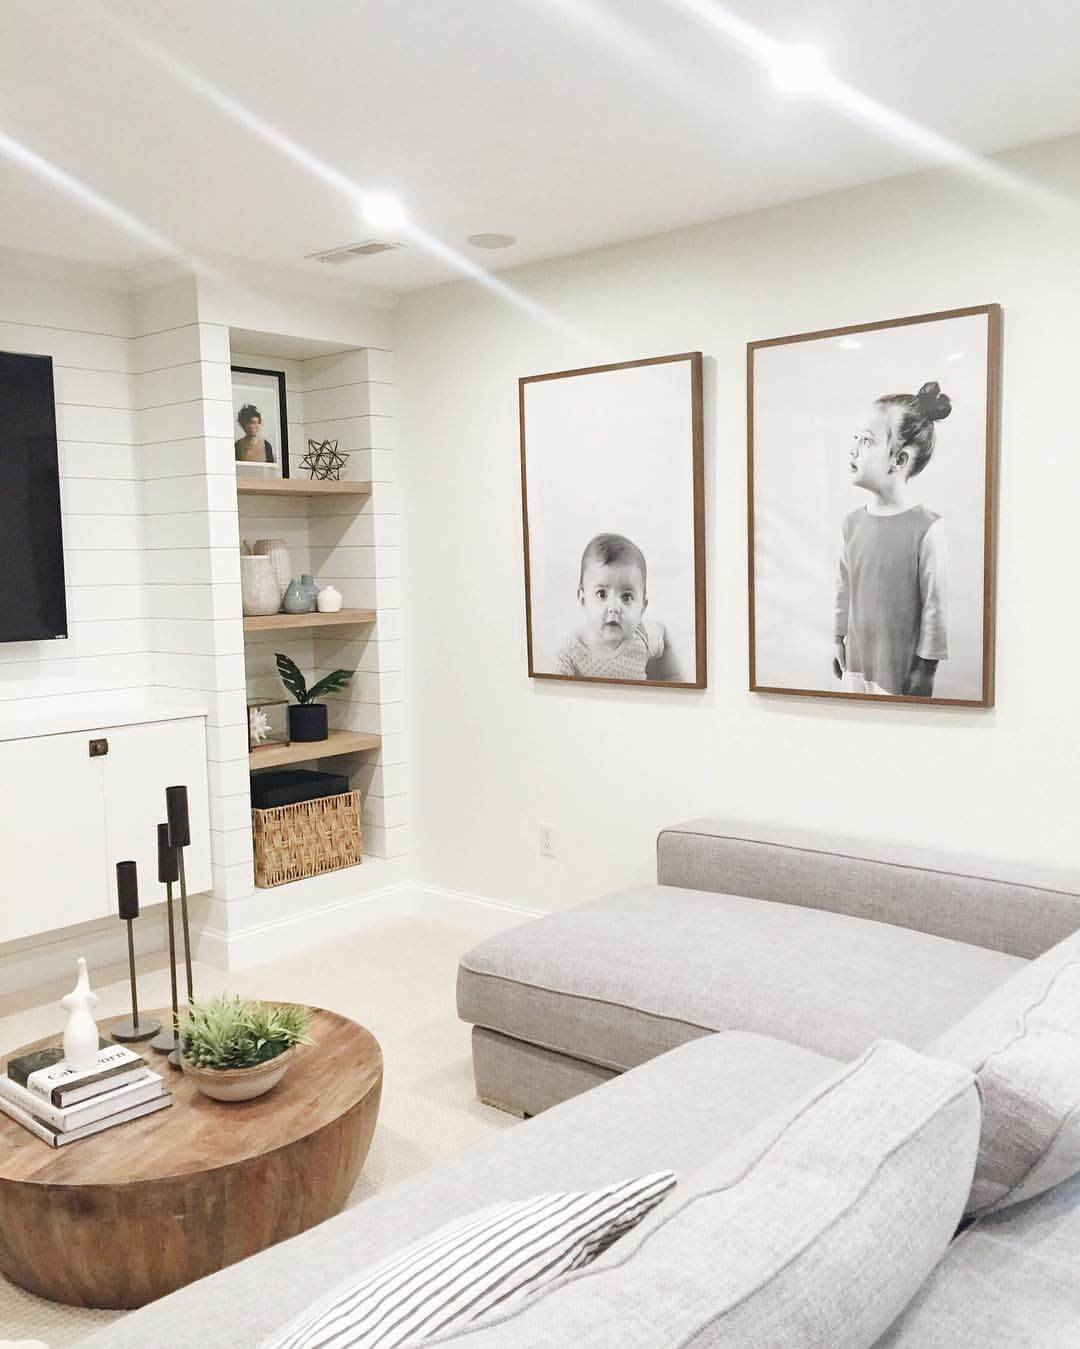 Modern Living Room Wall Decorating Ideas Inspirational 26 Best Modern Living Room Decorating Ideas and Designs for 2019